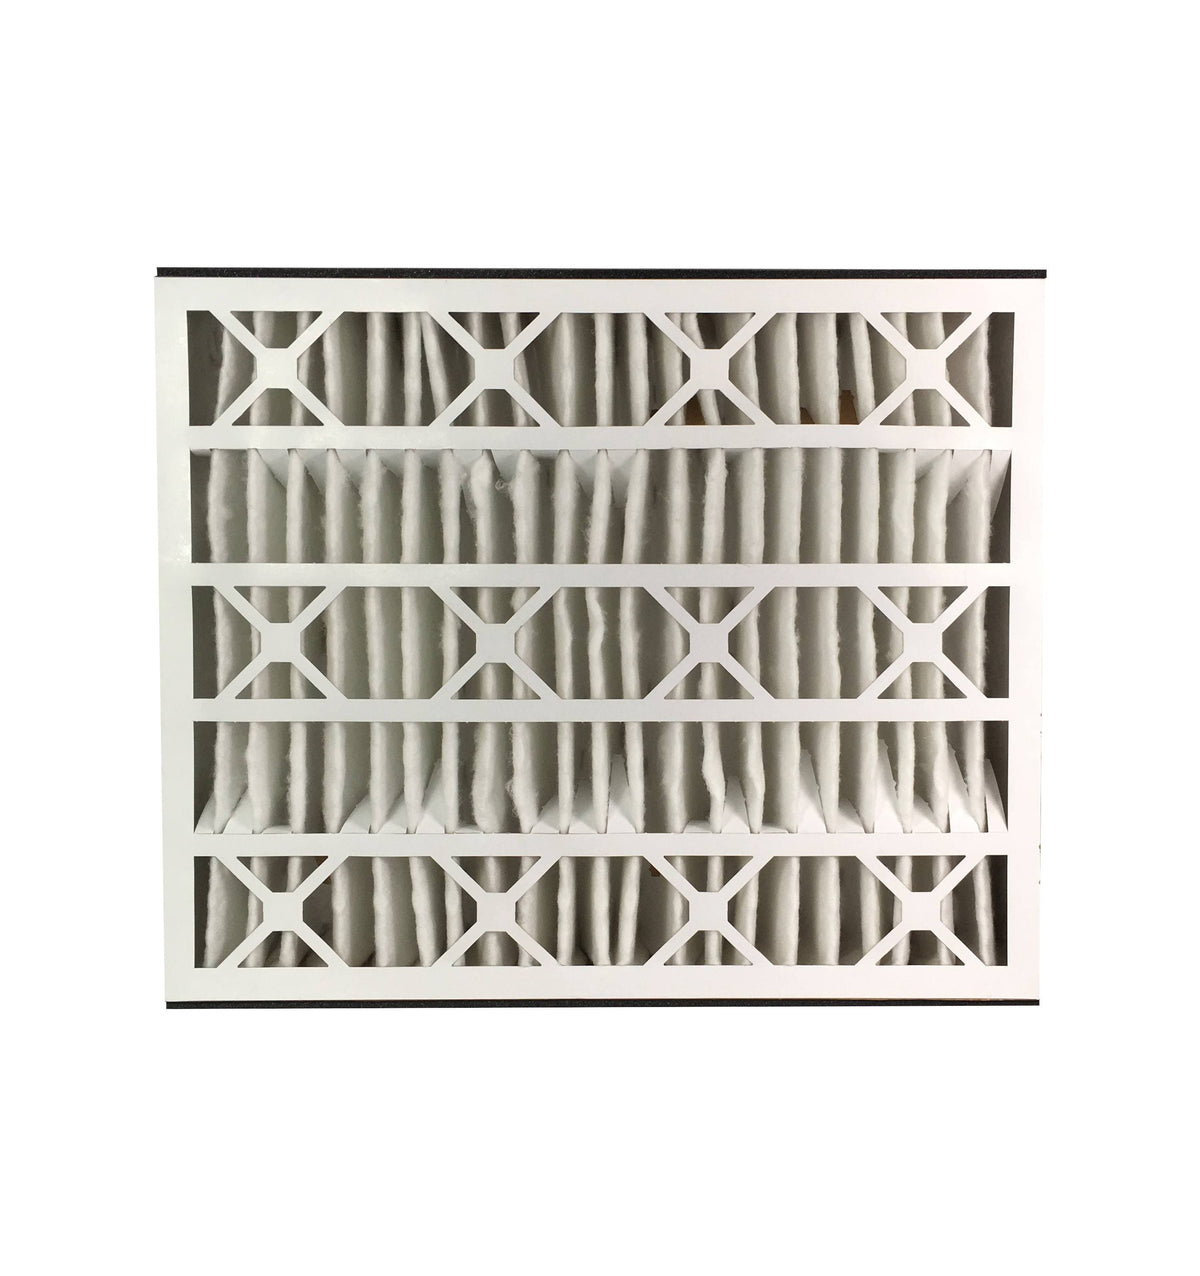 Ultravation 91-026 20x25x5 MERV 13 Replacement Furnace Filter - 2 Pack